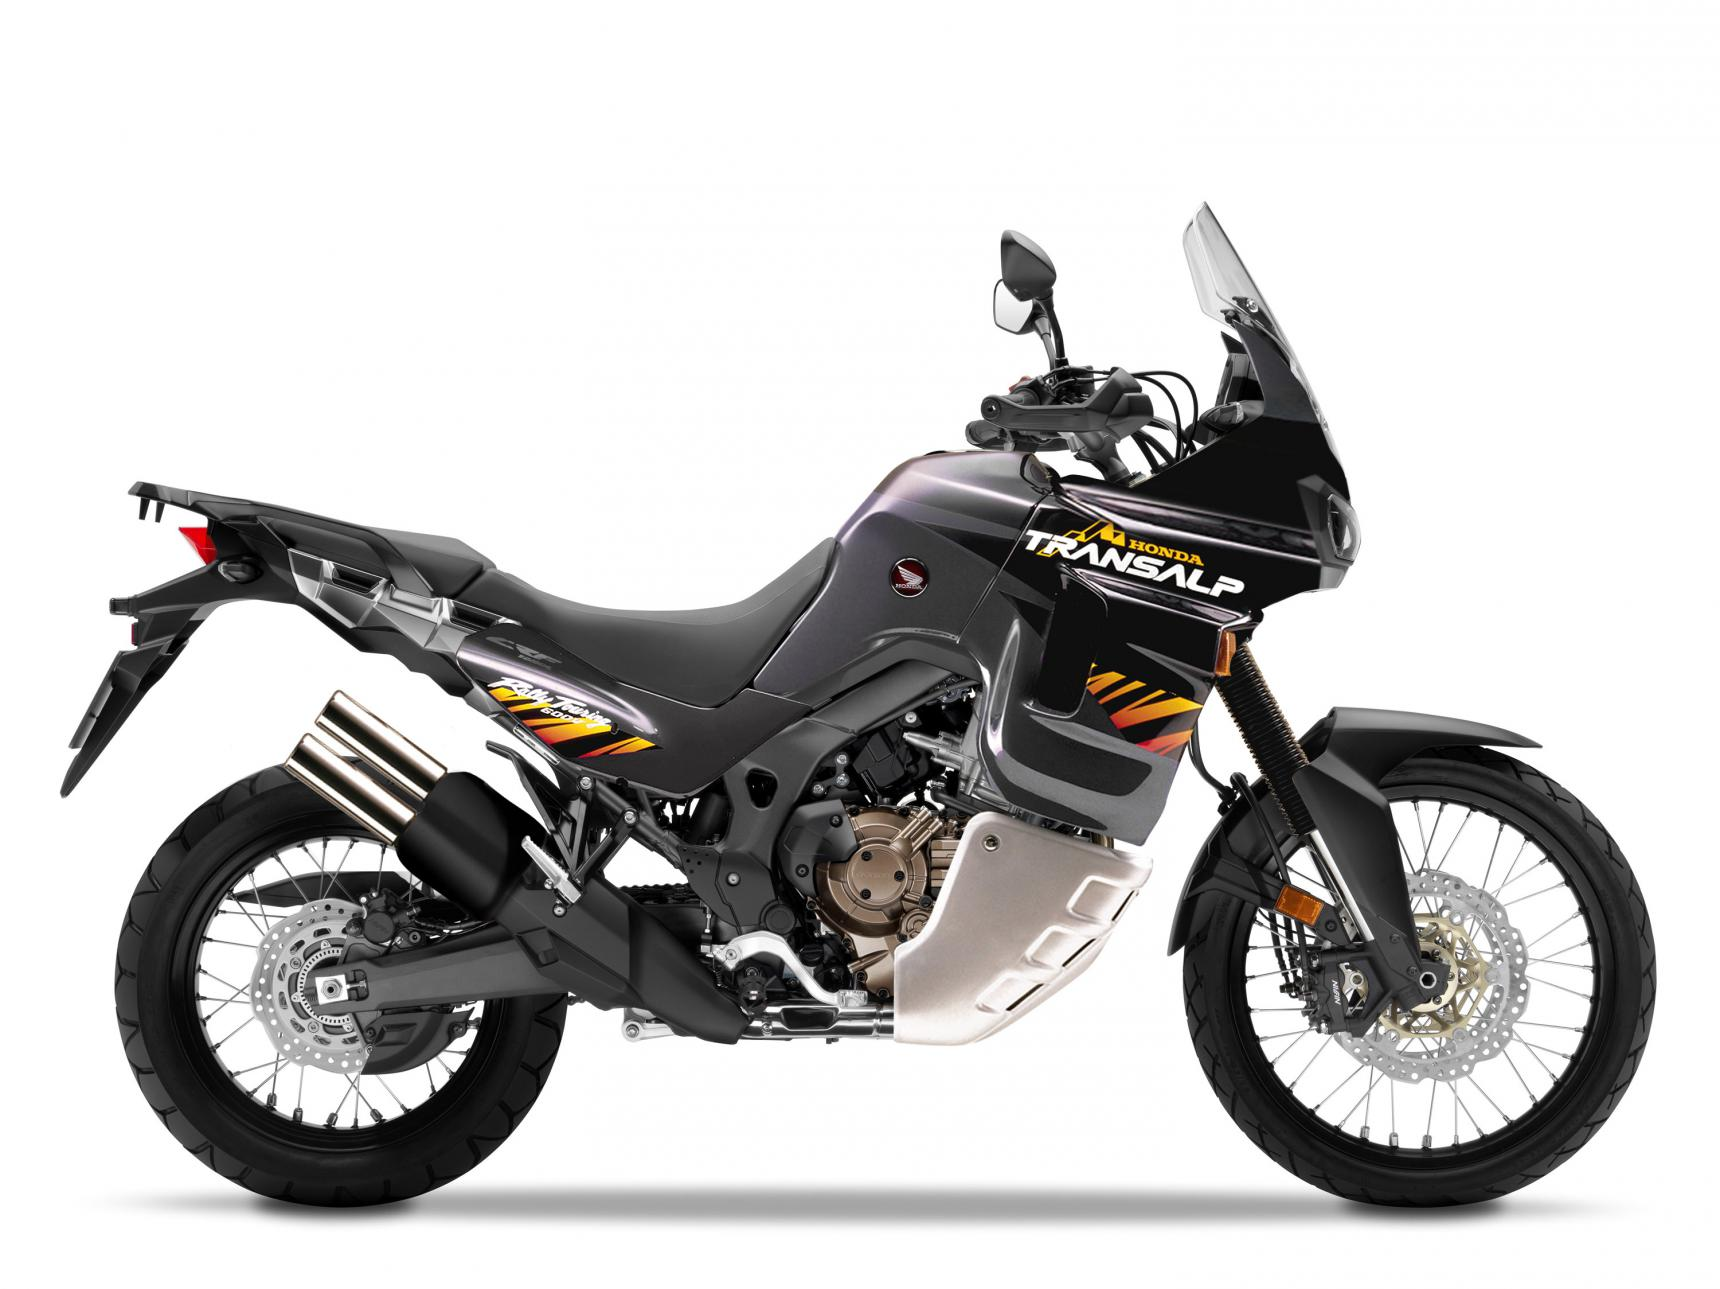 Africa twin 2015 crf1000l seite 506 Twin vs twin xl